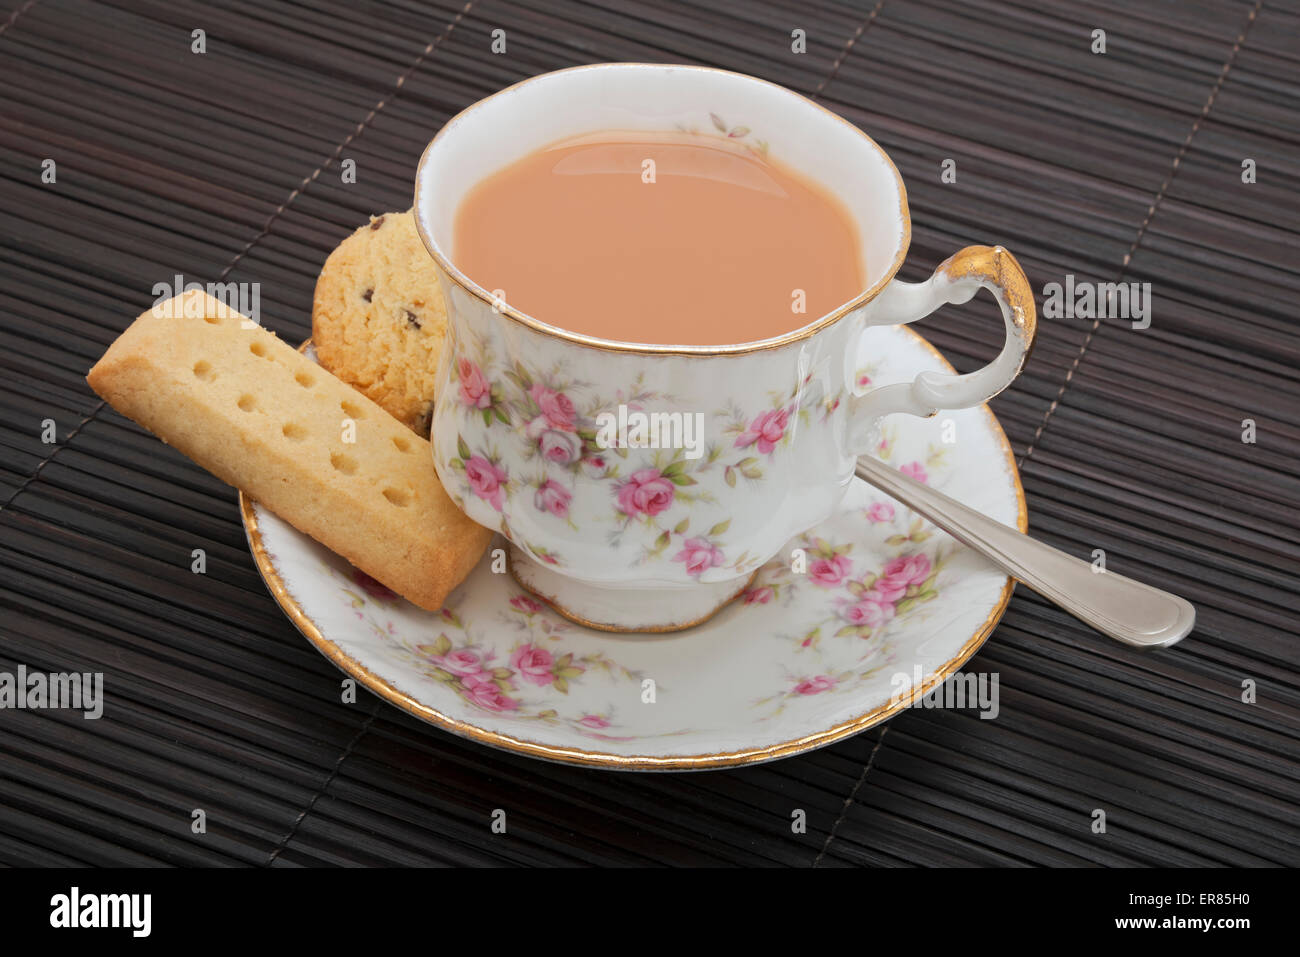 Cup of tea and shortbread biscuits Stock Photo: 83158572 - Alamy